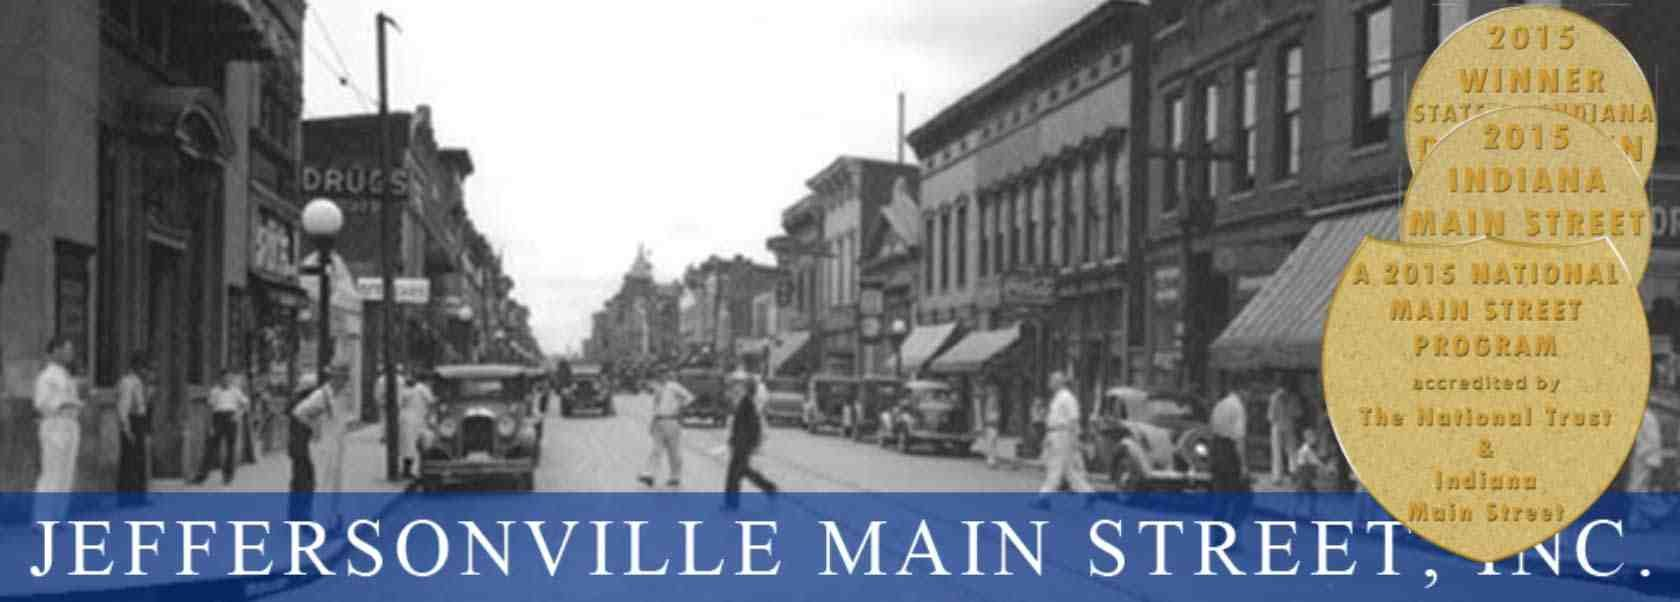 Vintage Main Street, Jeffersonville